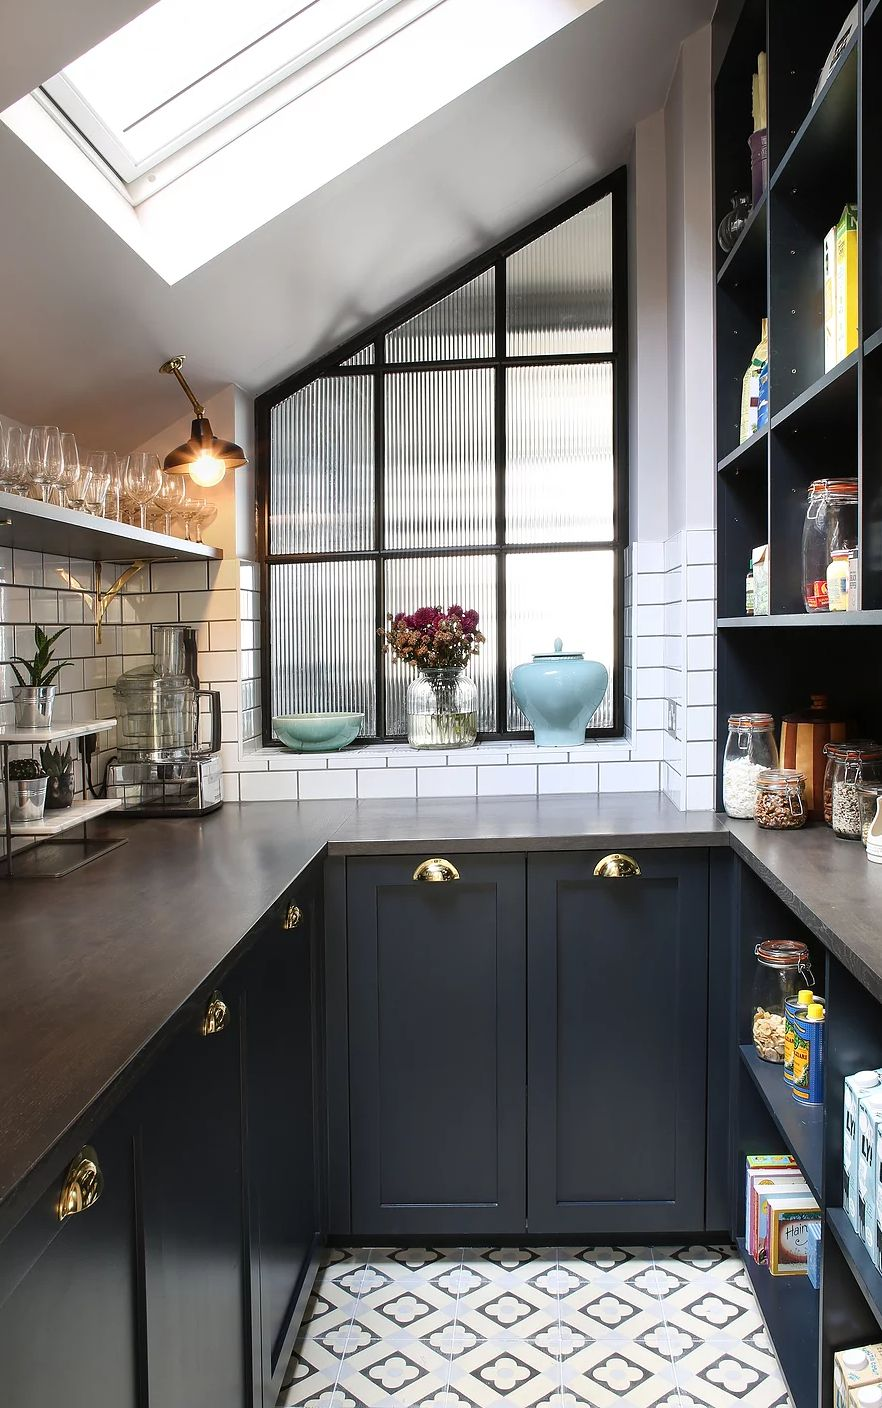 Amazing Kitchen Design With Touches Of Gold   Kitchen design small ...